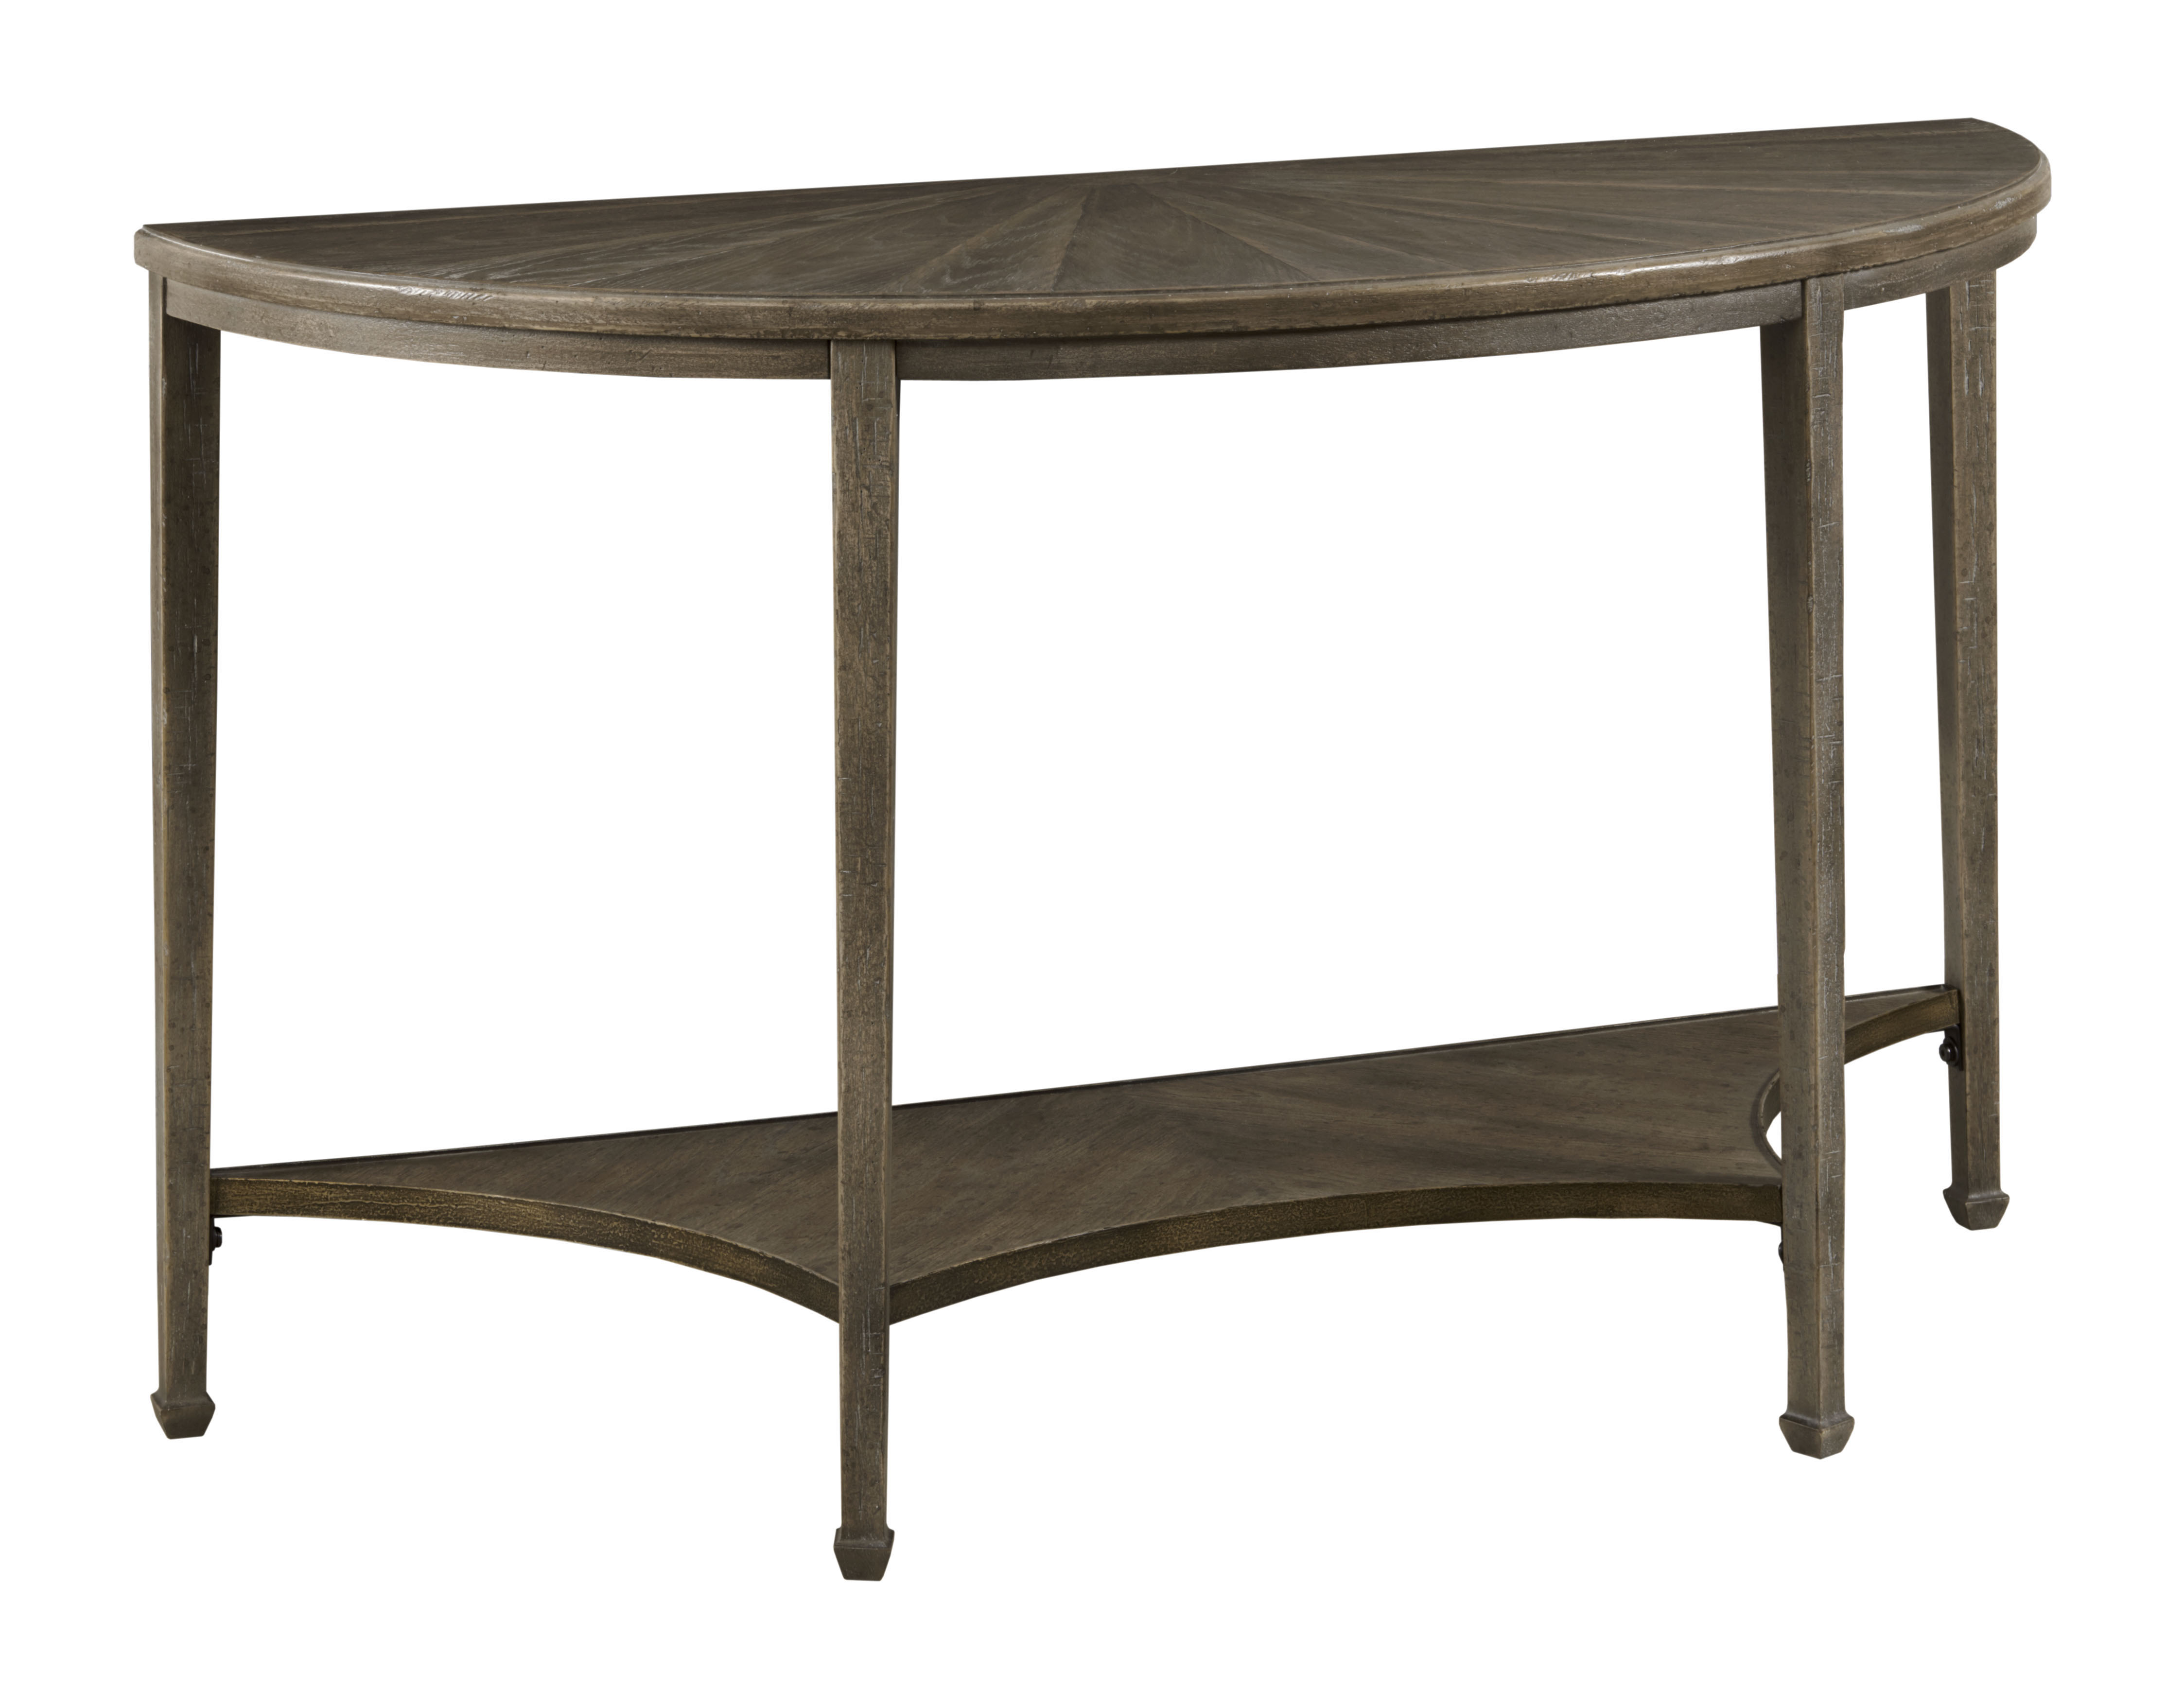 Emporium Console Table by Hammary at Crowley Furniture & Mattress